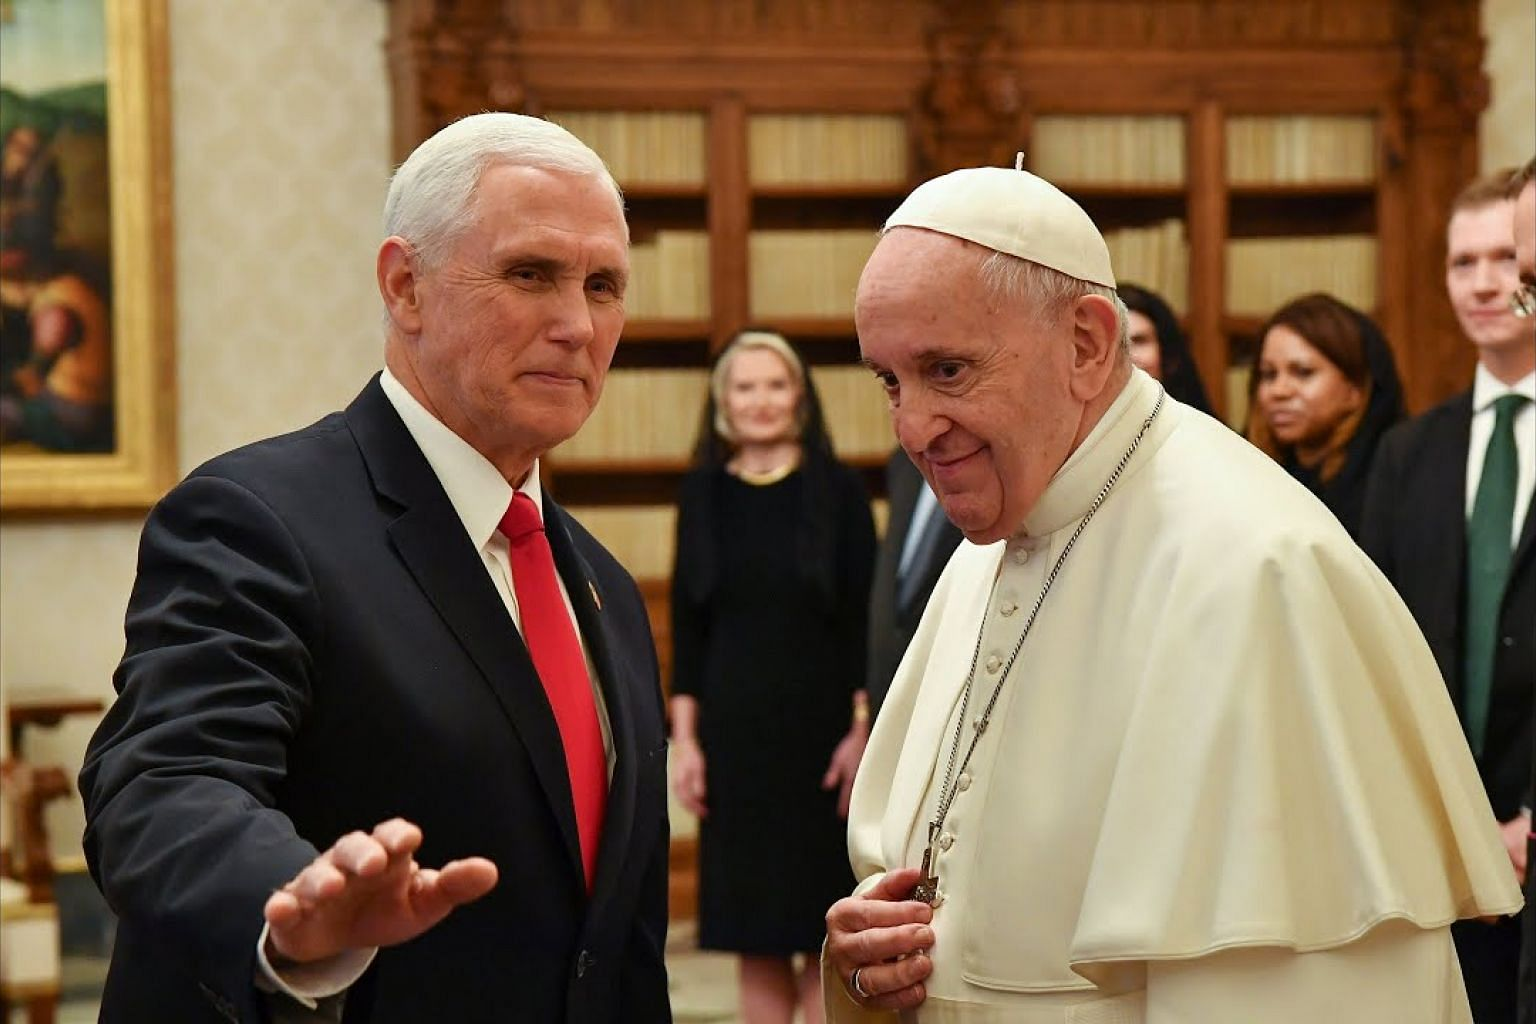 Pence tells pope, 'You have made me a hero'